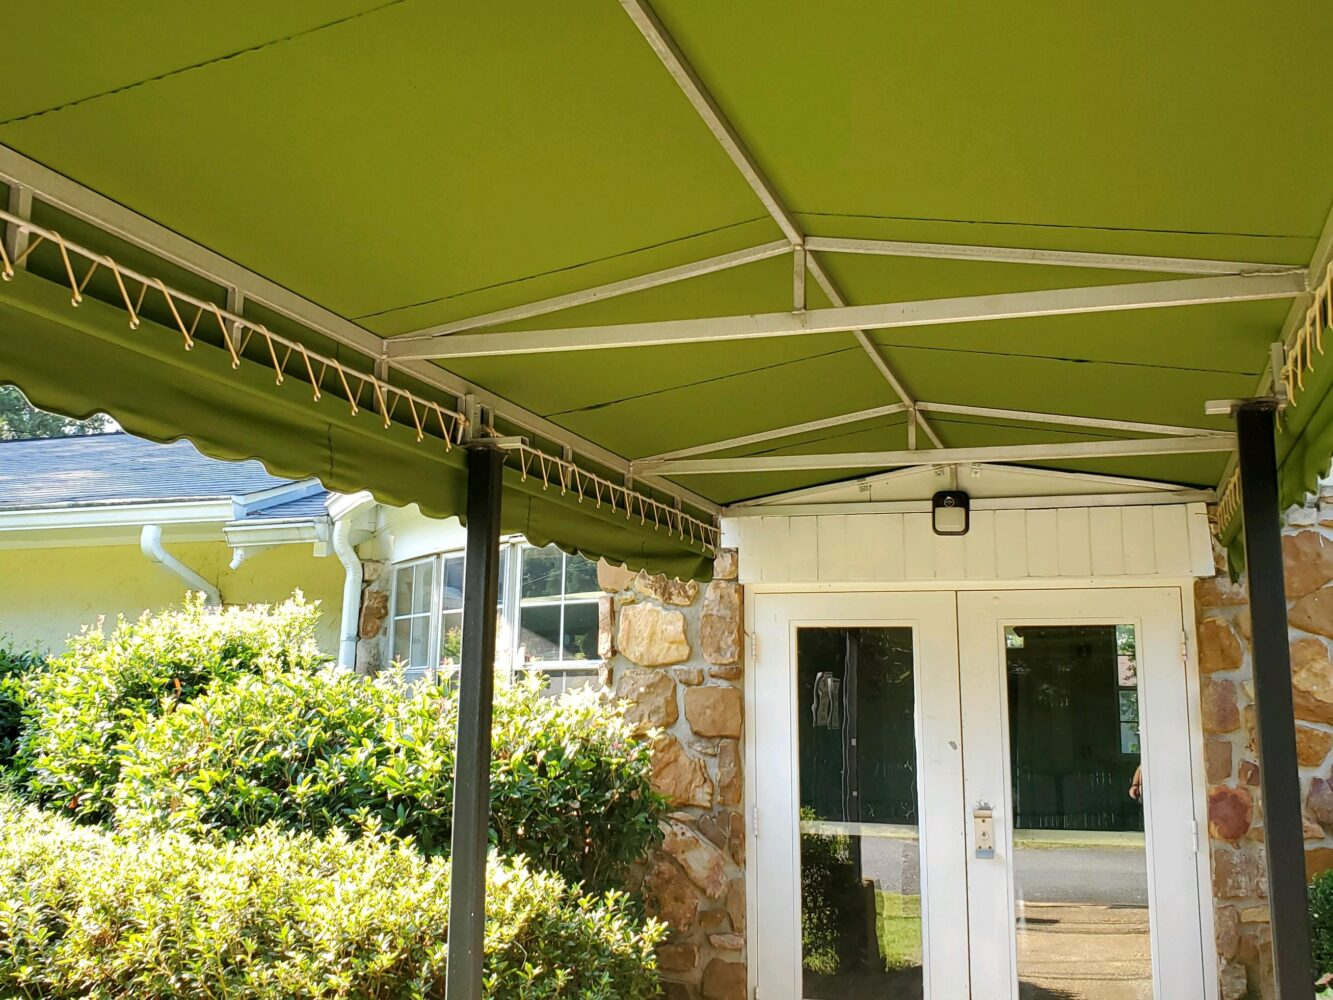 Laced Aluminum Frame Walkway Awning, Sunbrella Canvas